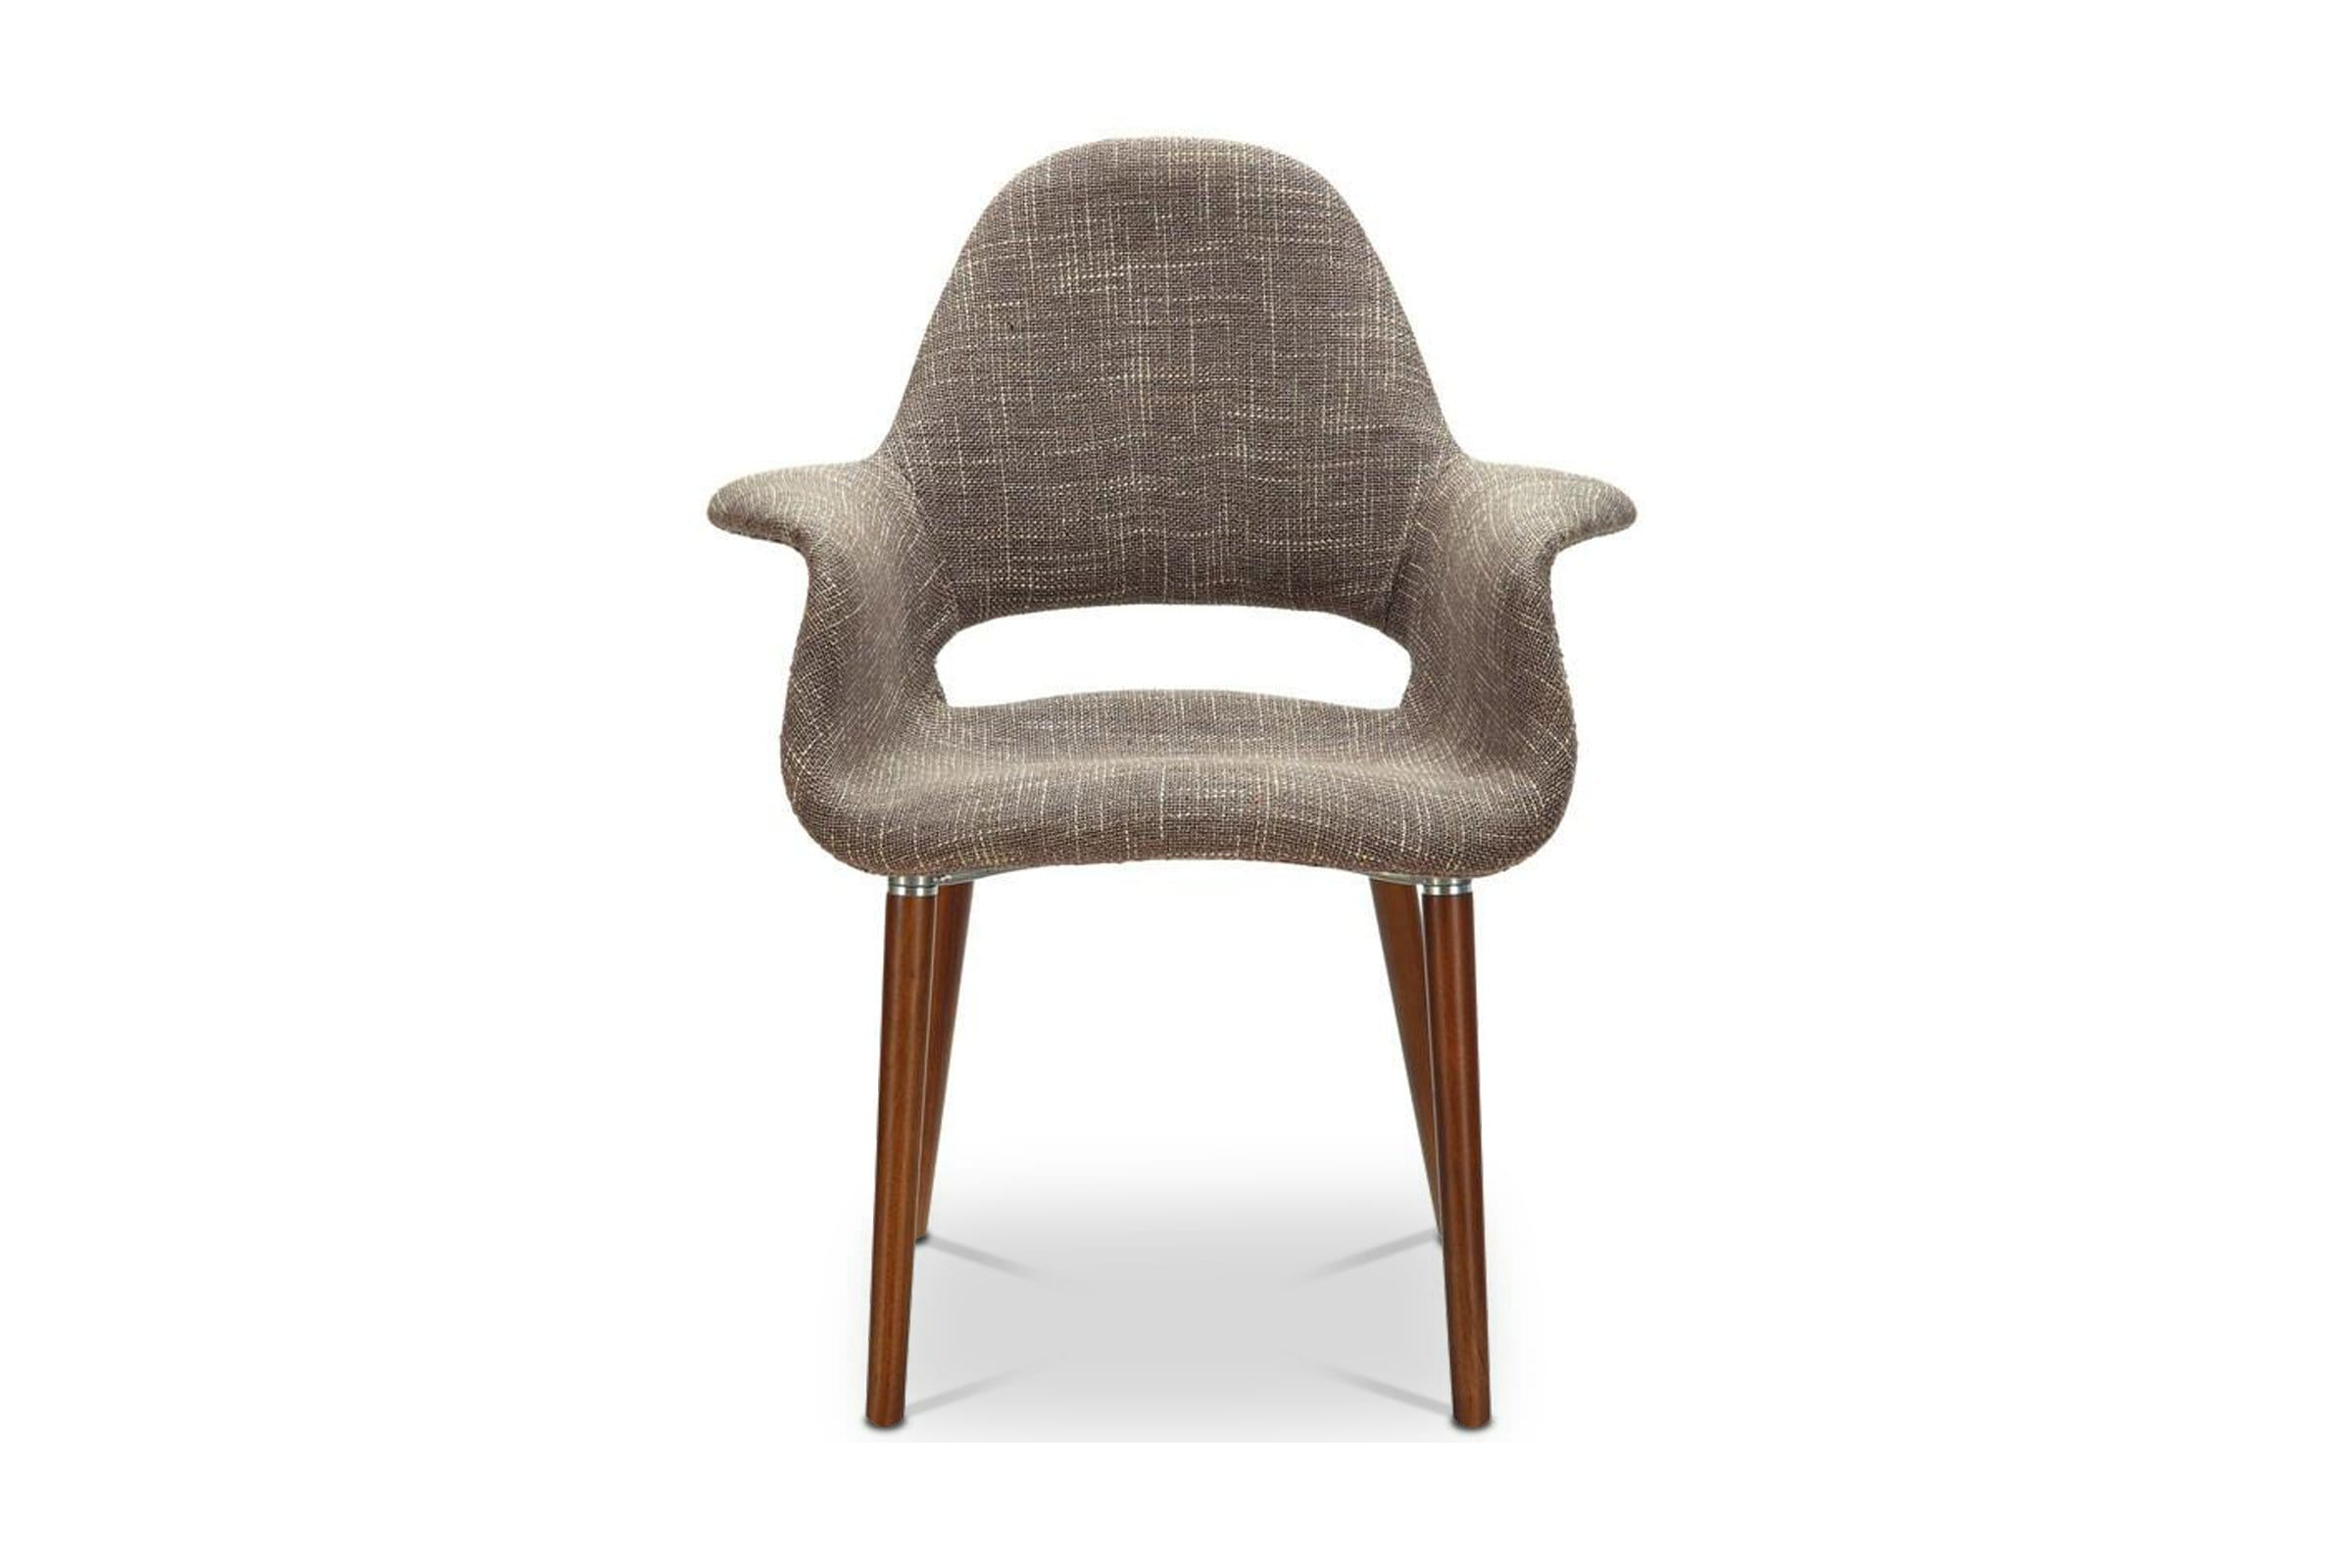 Adams Hill Arm Chair - Grey - Accent Chair - Furniture sold by Apt2B